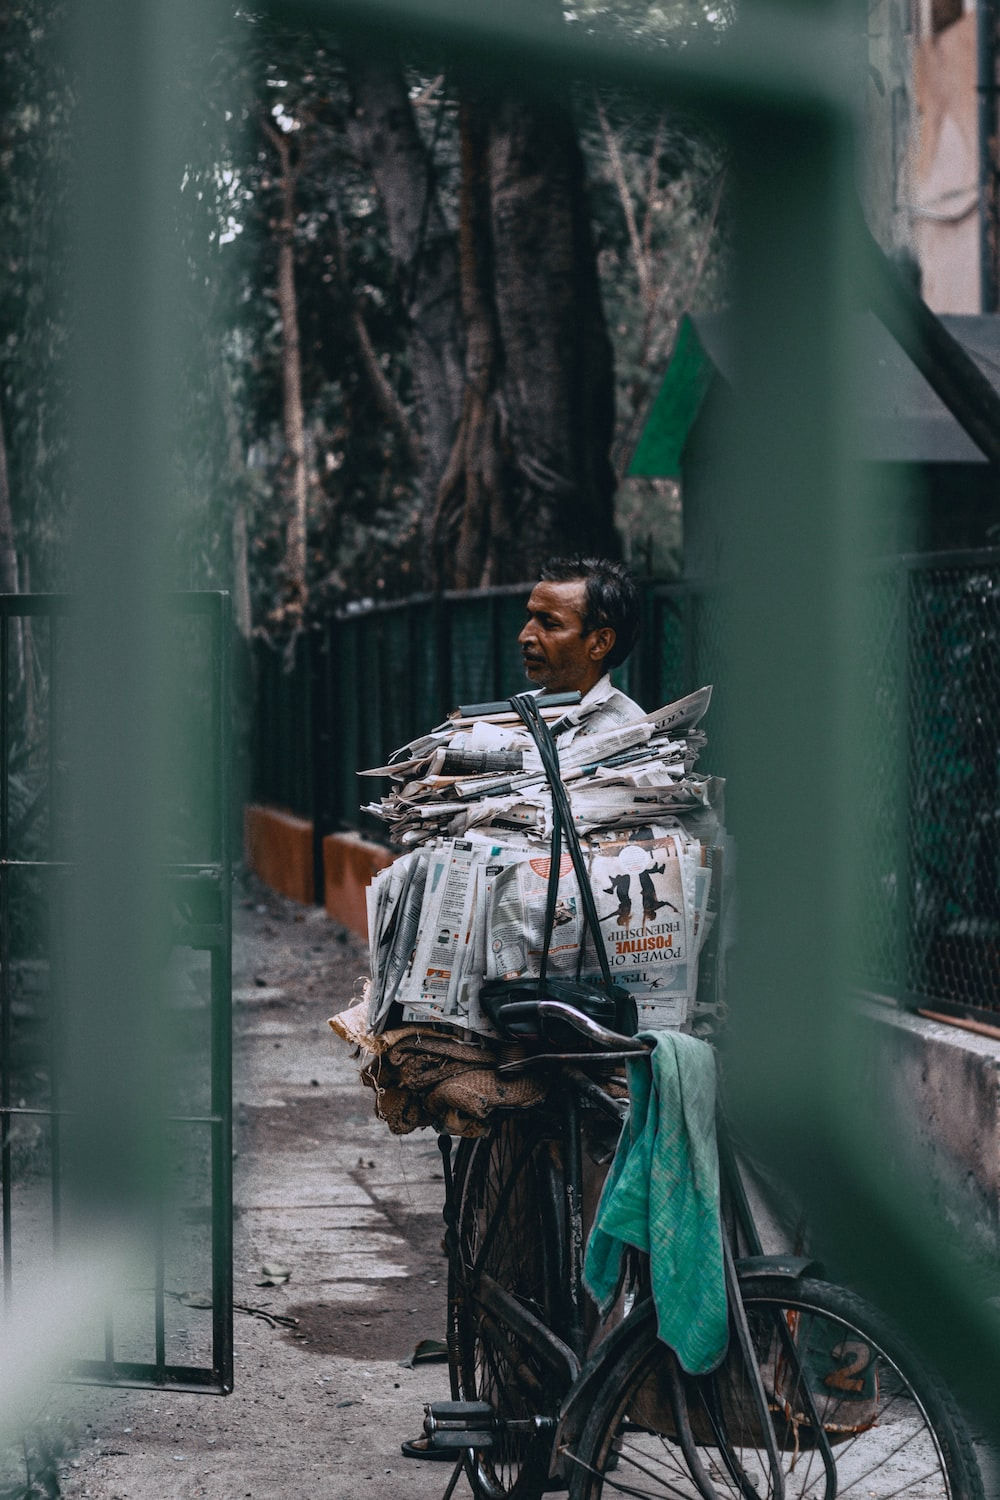 man near on pile of newspapers